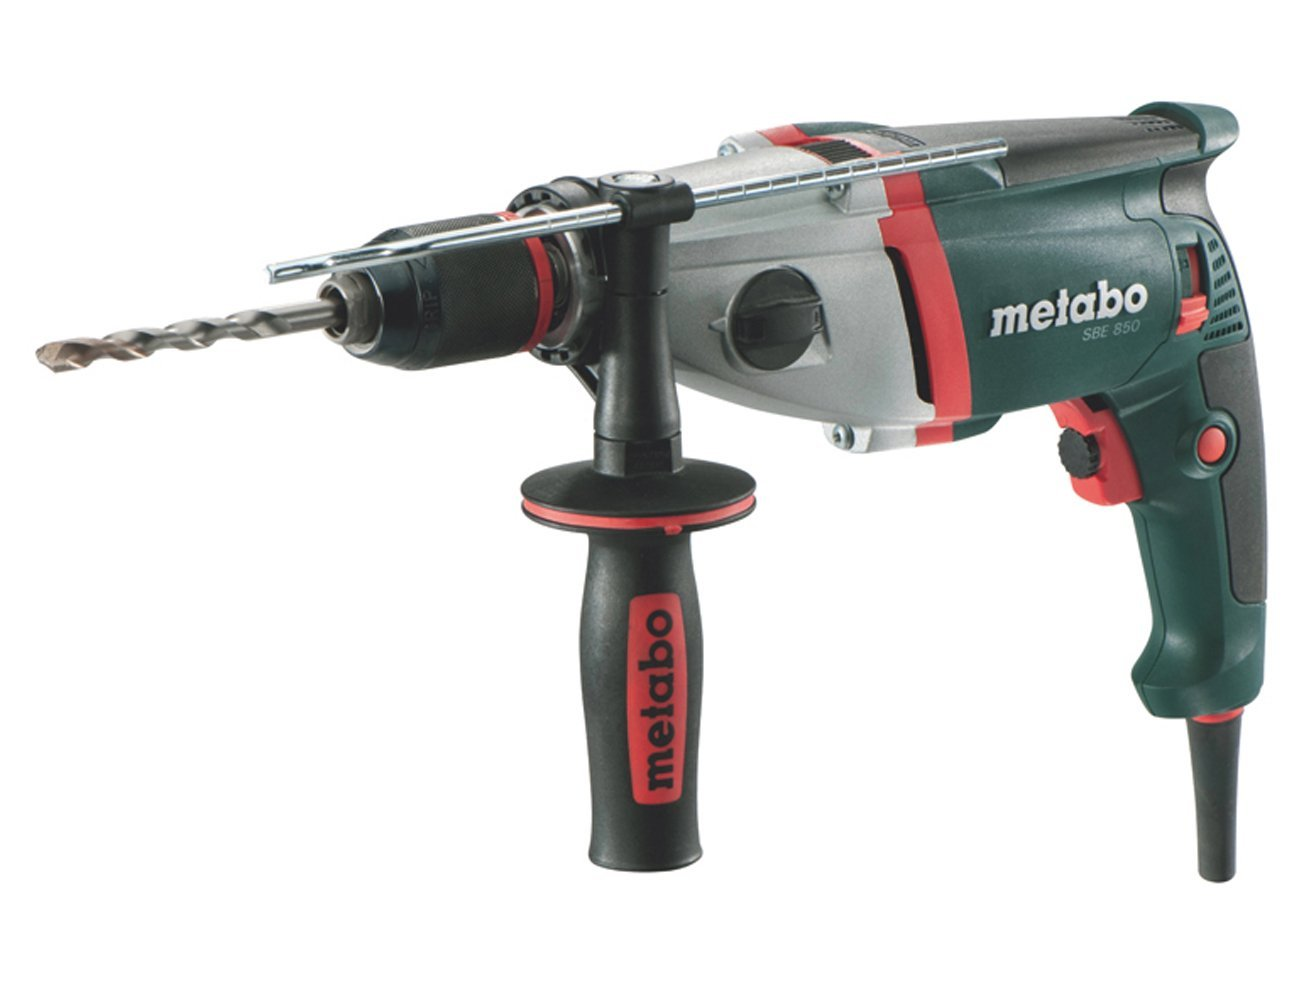 Test perceuse filaire percussion metabo sbe 850 for Perforateur metabo sans fil